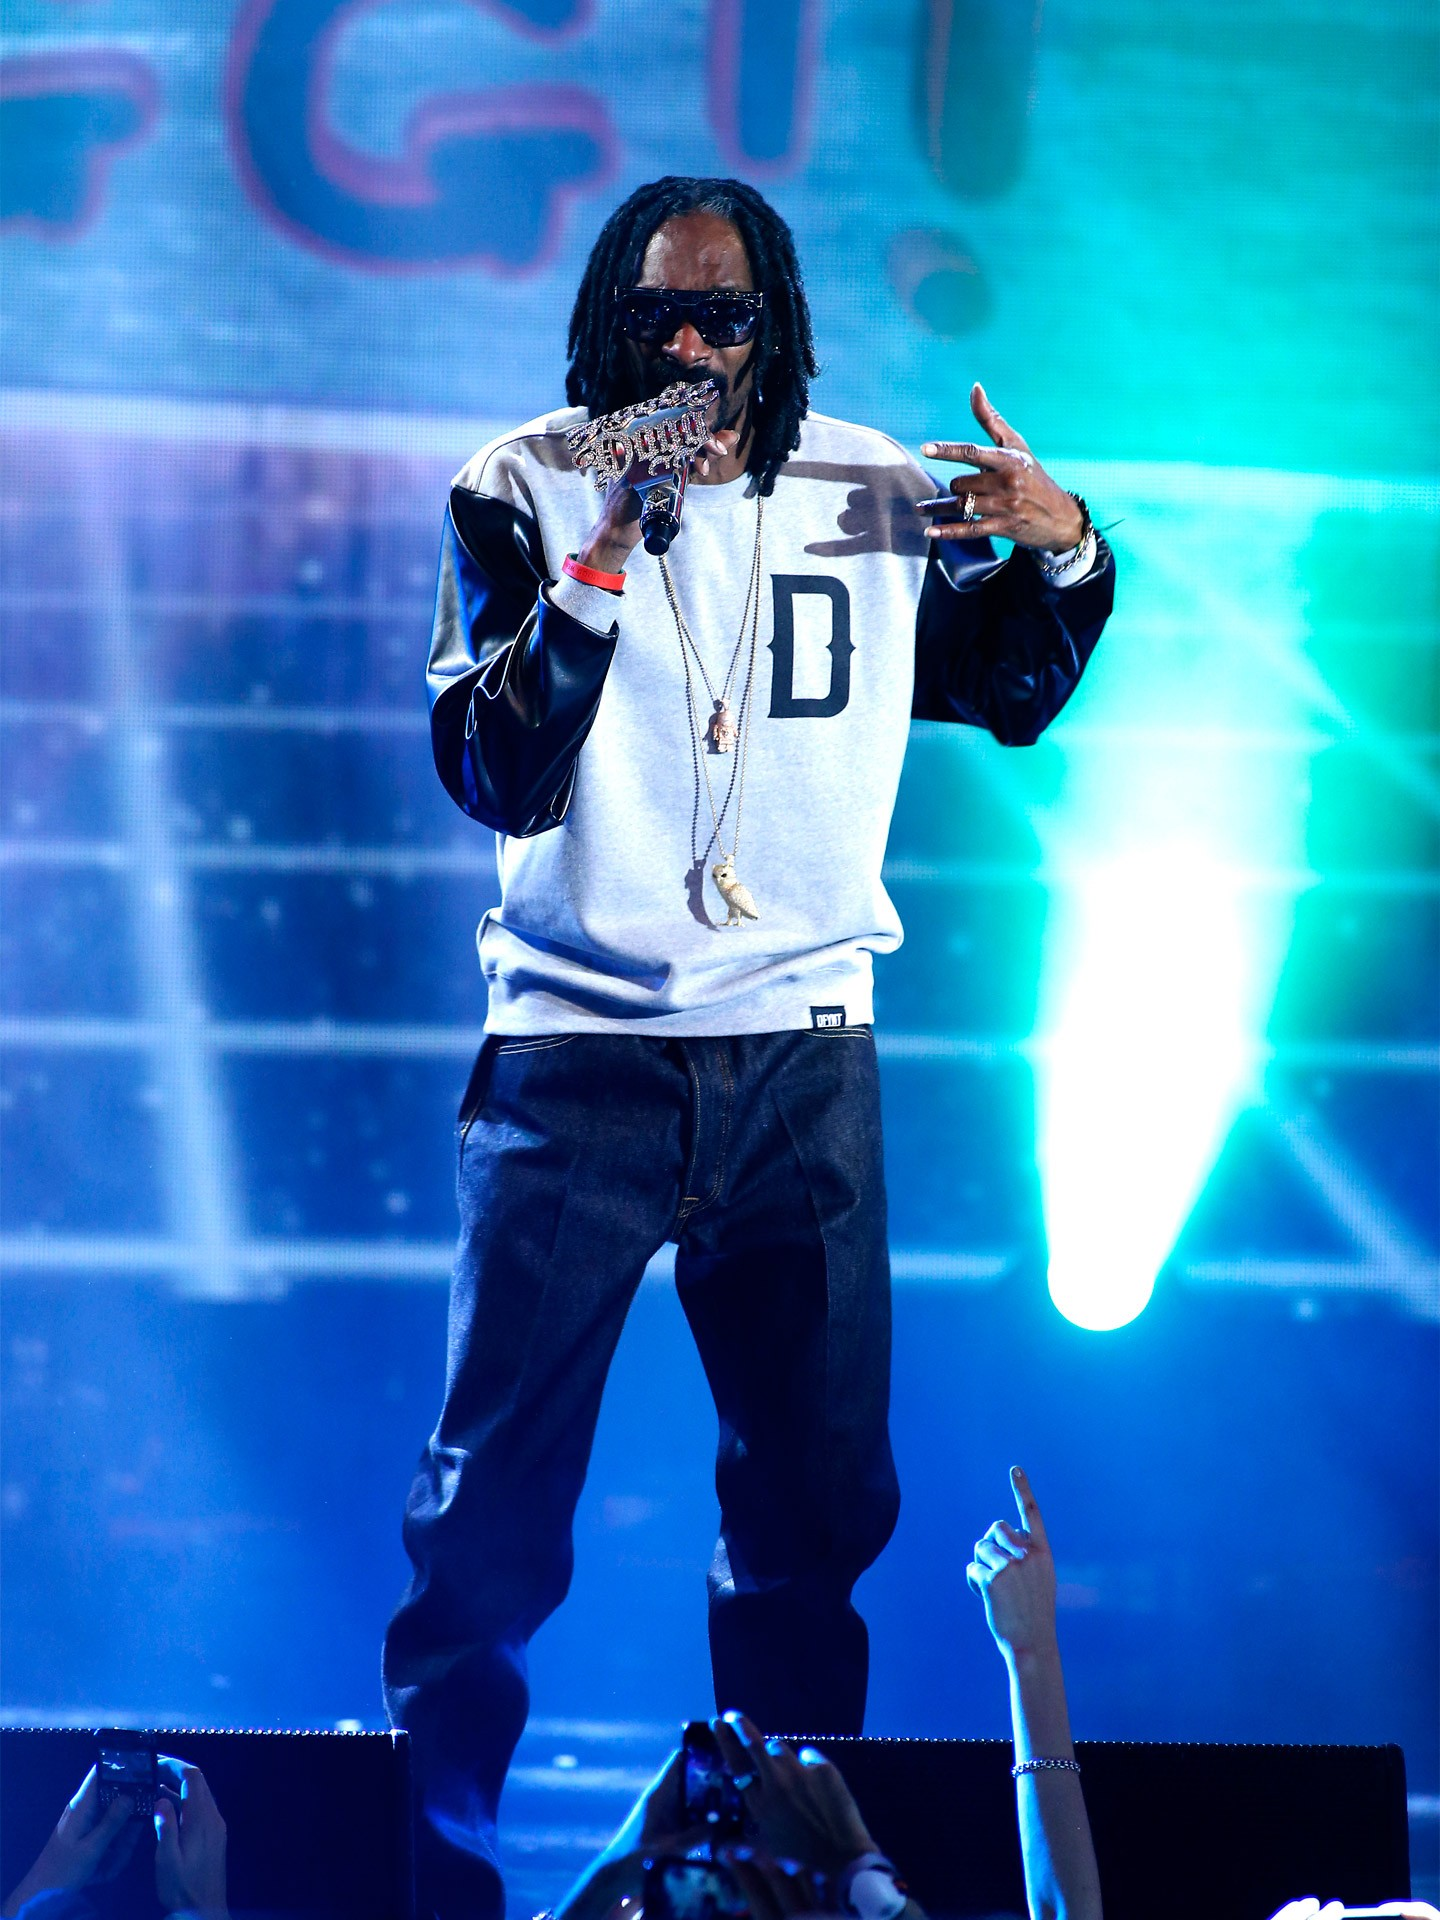 mgid:file:gsp:scenic:/international/mtvema/2013/images/_night-of/performers/Snoop-Dogg-Getty-Images-for-MTV-187598753.jpg